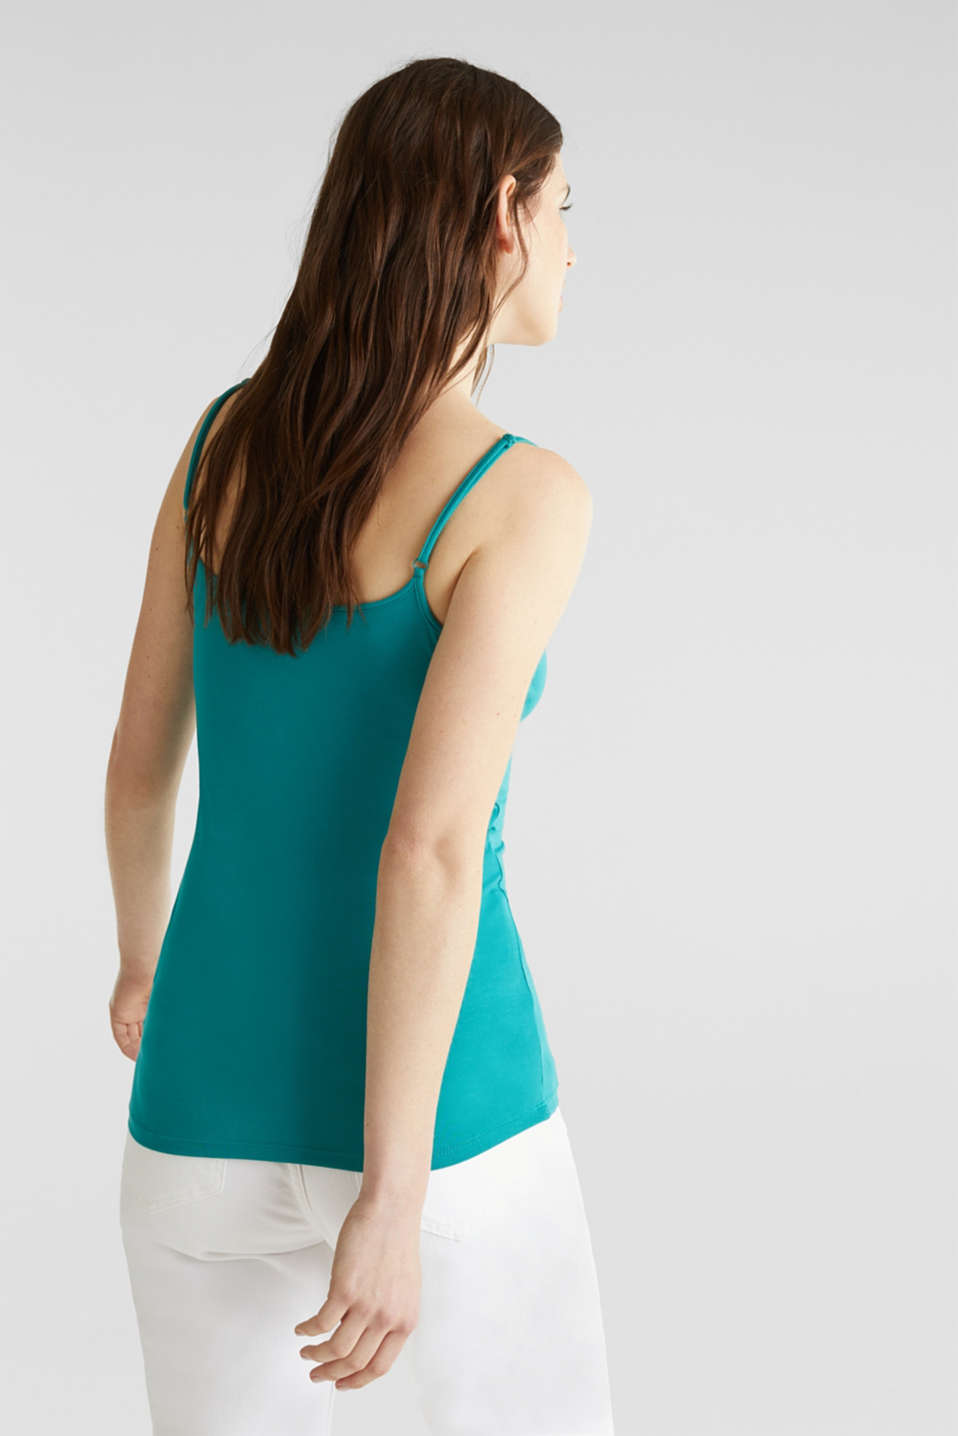 Stretch jersey top with spaghetti straps, TEAL GREEN 4, detail image number 2